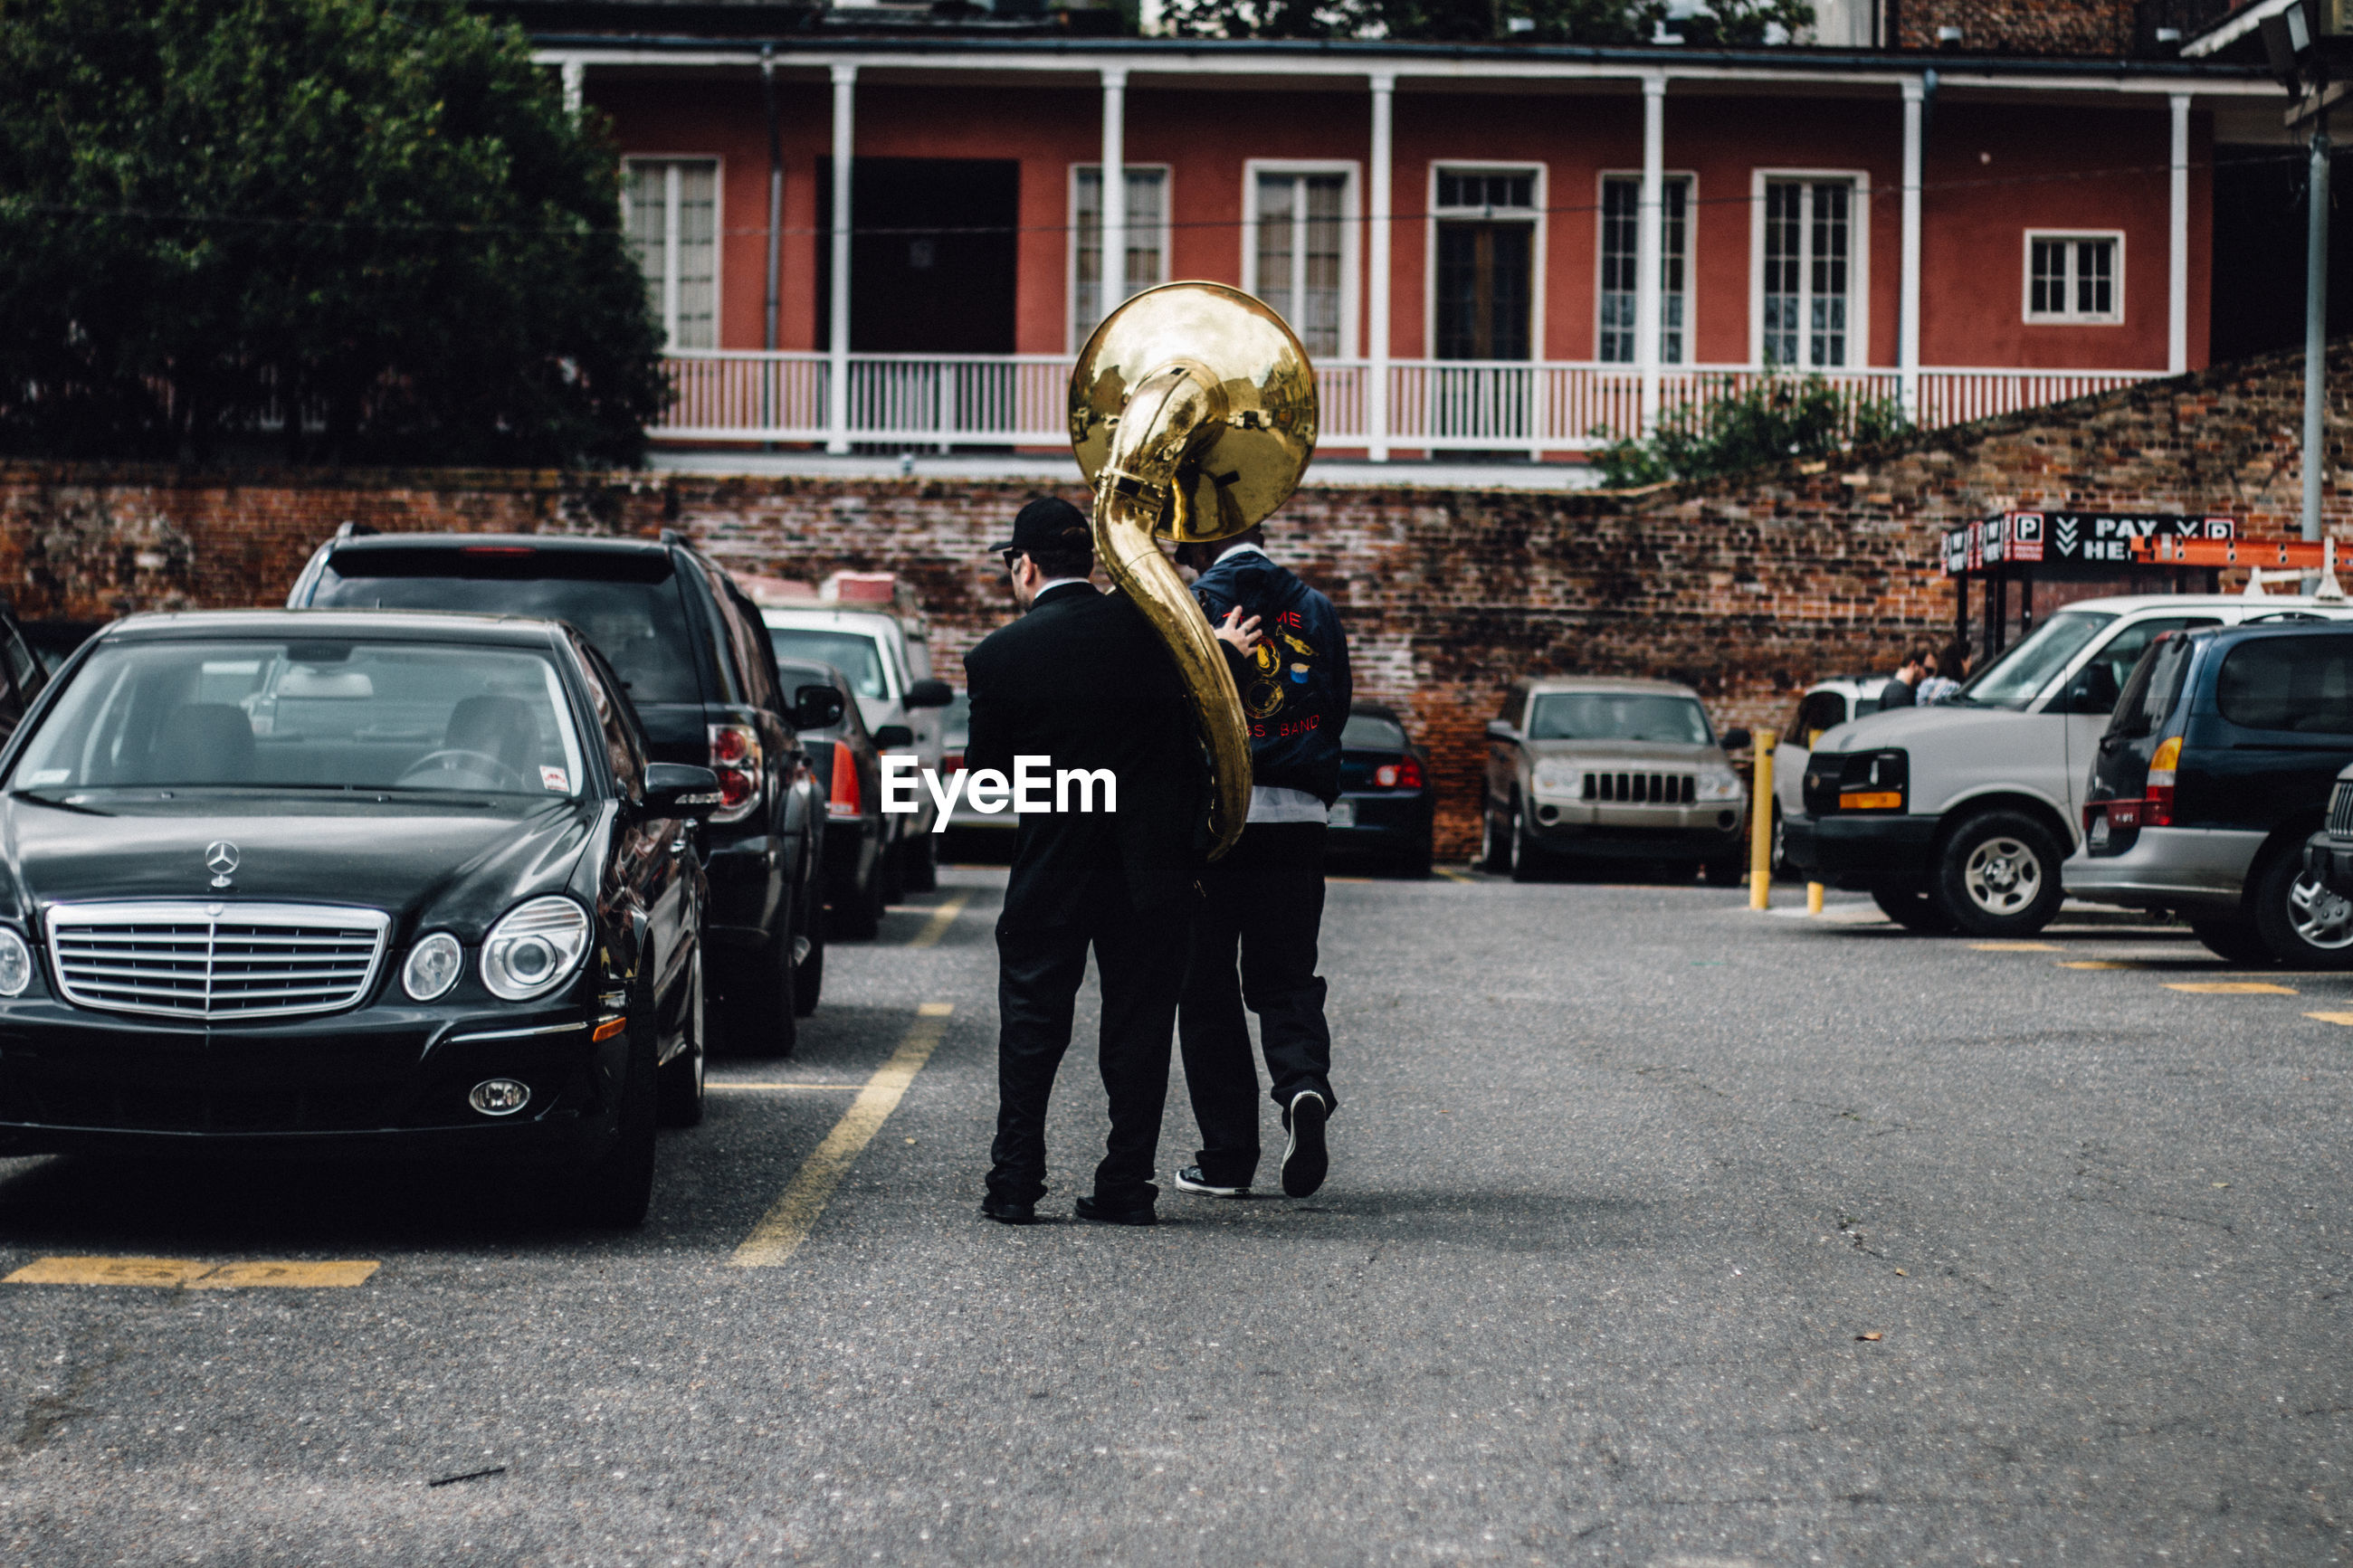 Rear view of man with friend carrying brass instrument in parking lot